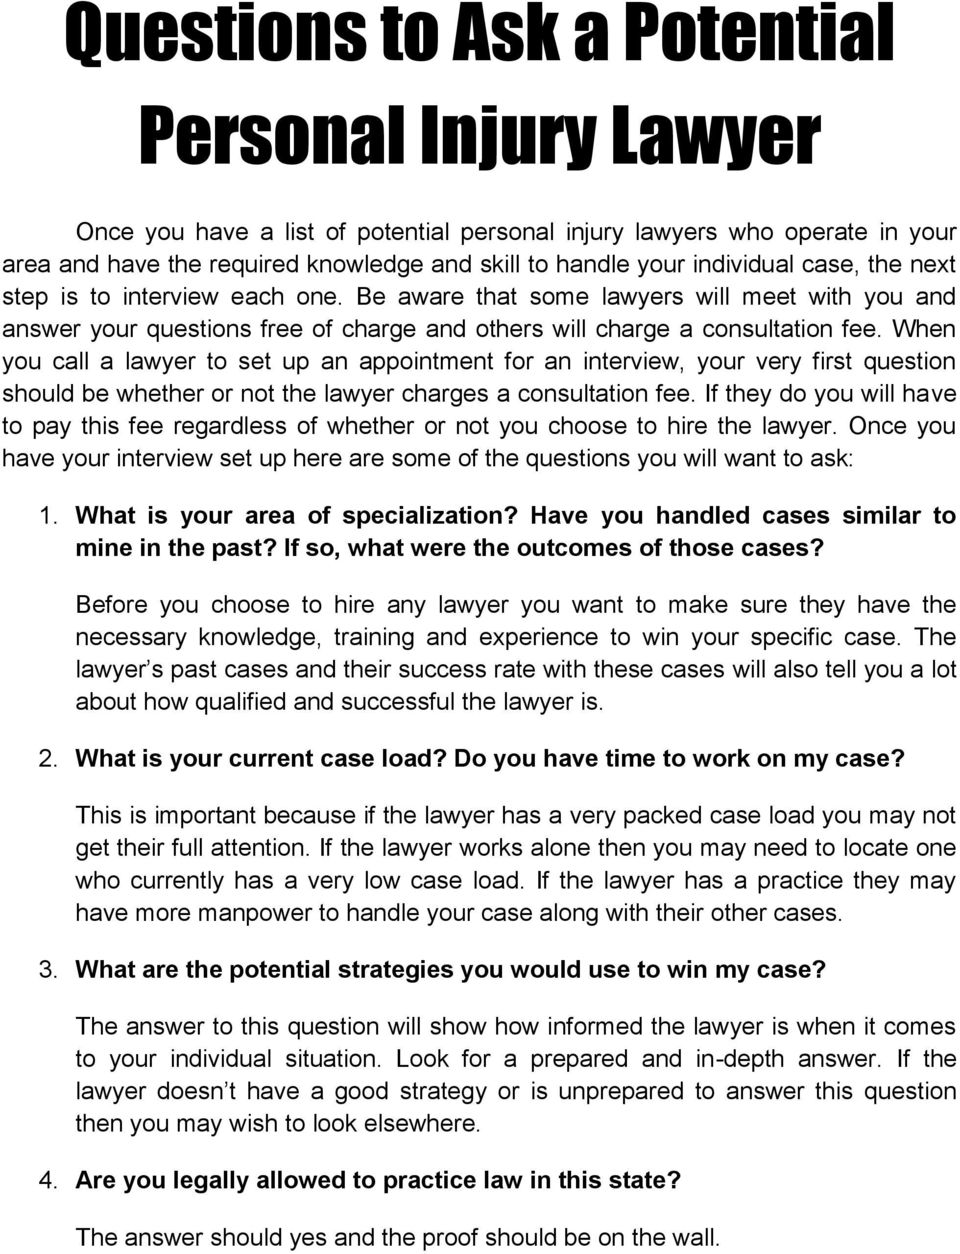 When you call a lawyer to set up an appointment for an interview, your very first question should be whether or not the lawyer charges a consultation fee.